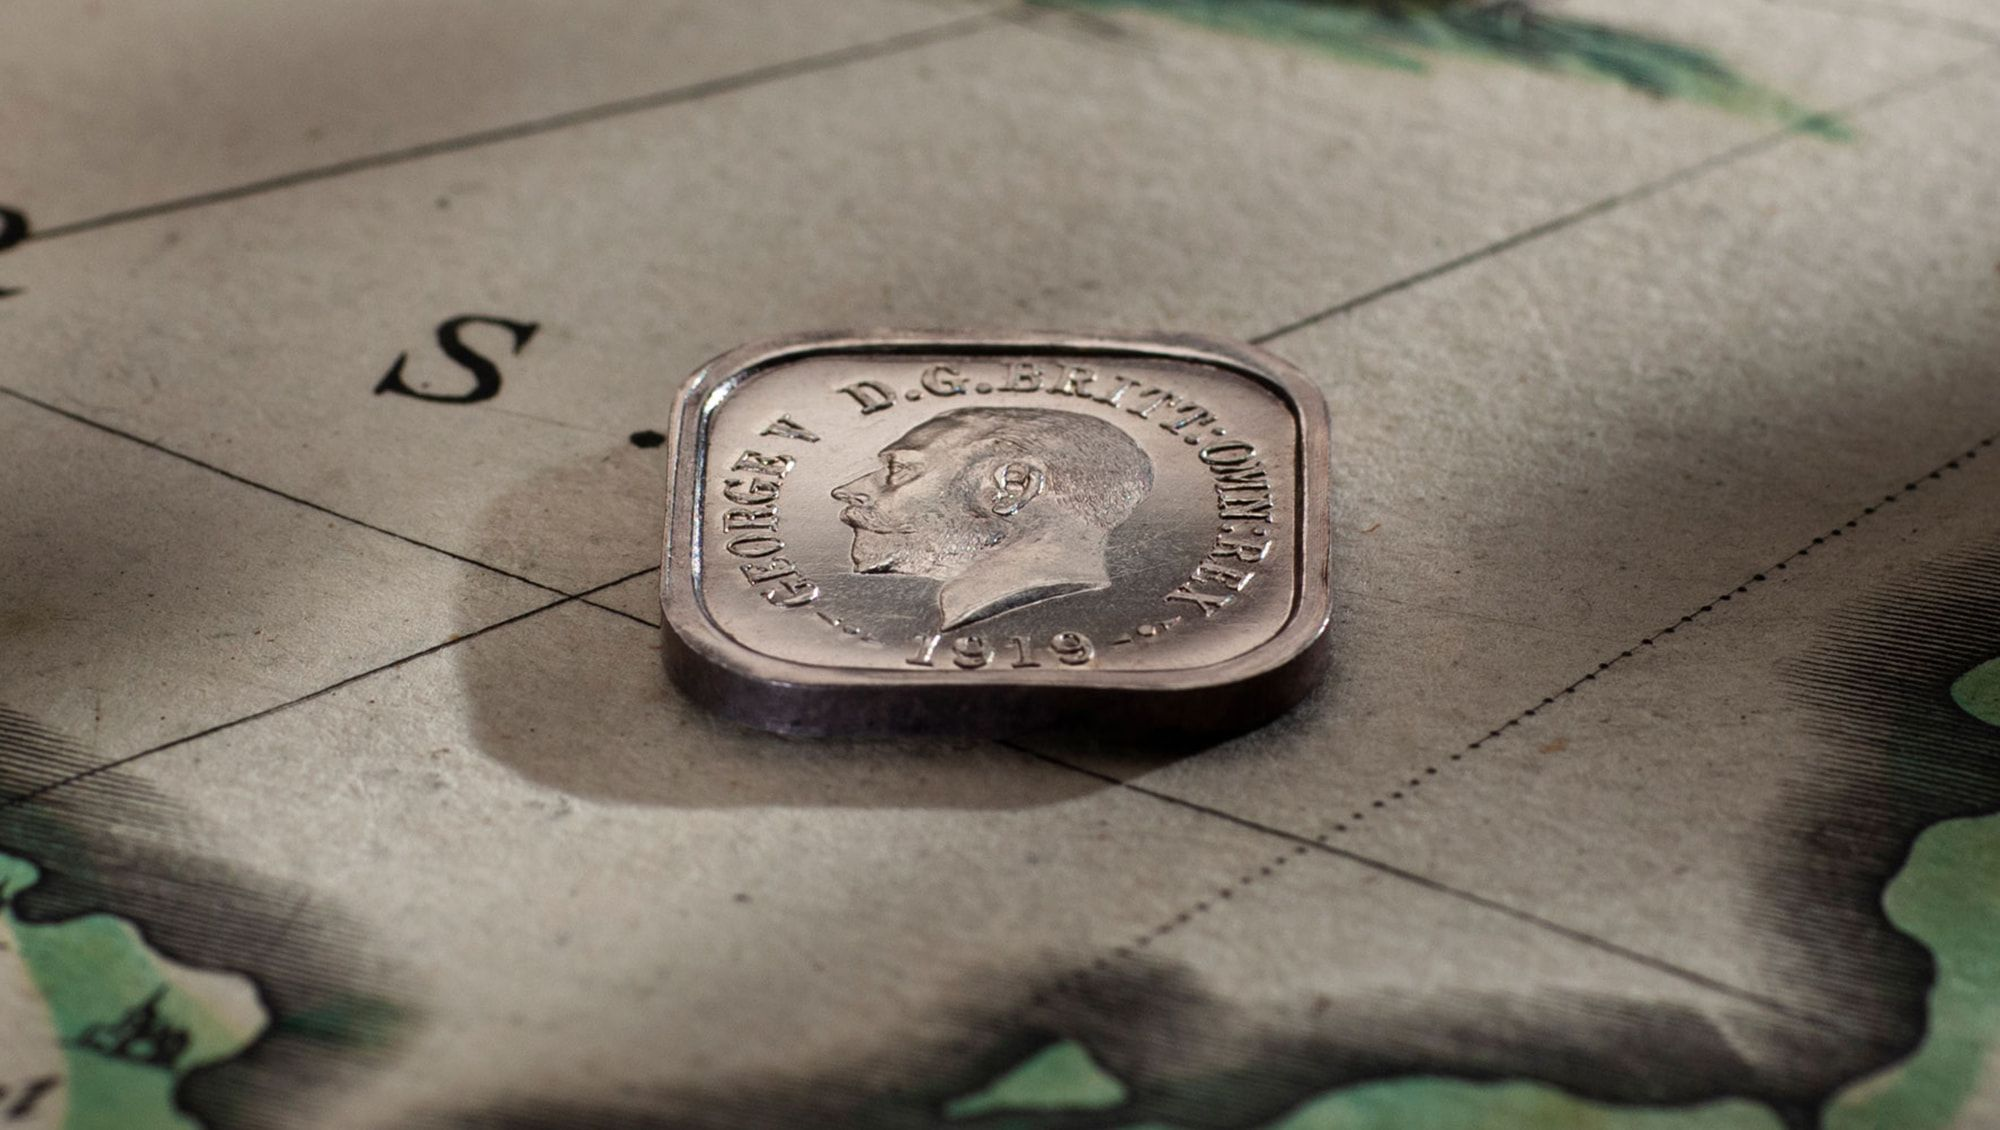 1919-Square-Penny-Date-February-2020